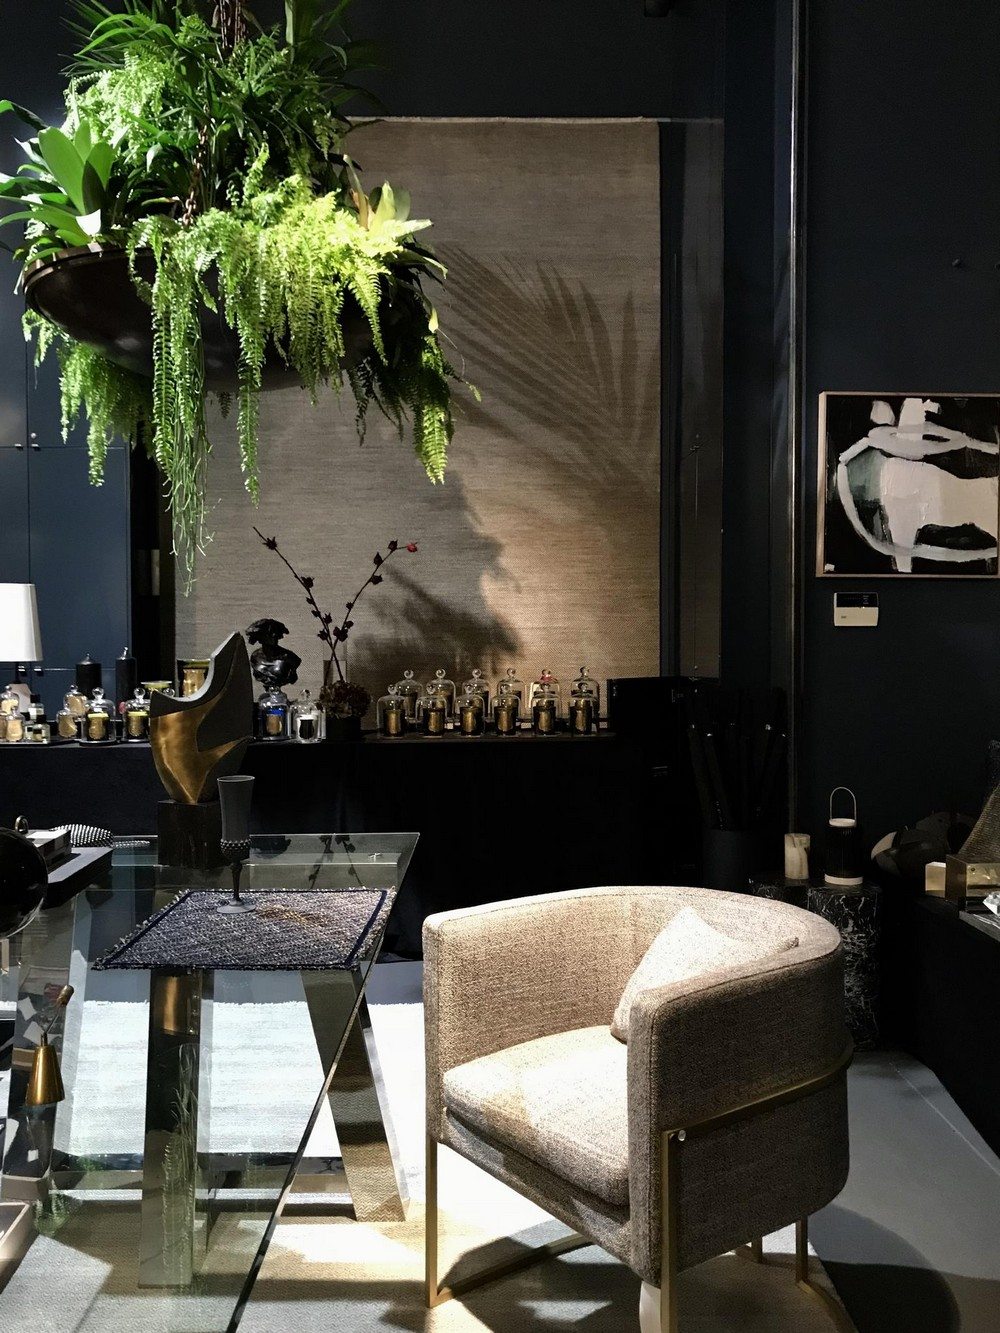 Best Design Showrooms to Discover in Sydney 1 design showrooms Best Design Showrooms to Discover in Sydney Best Design Showrooms to Discover in Sydney 1 luxury showroom Where To Shop – The Best Luxury Showrooms In Sydney Best Design Showrooms to Discover in Sydney 1